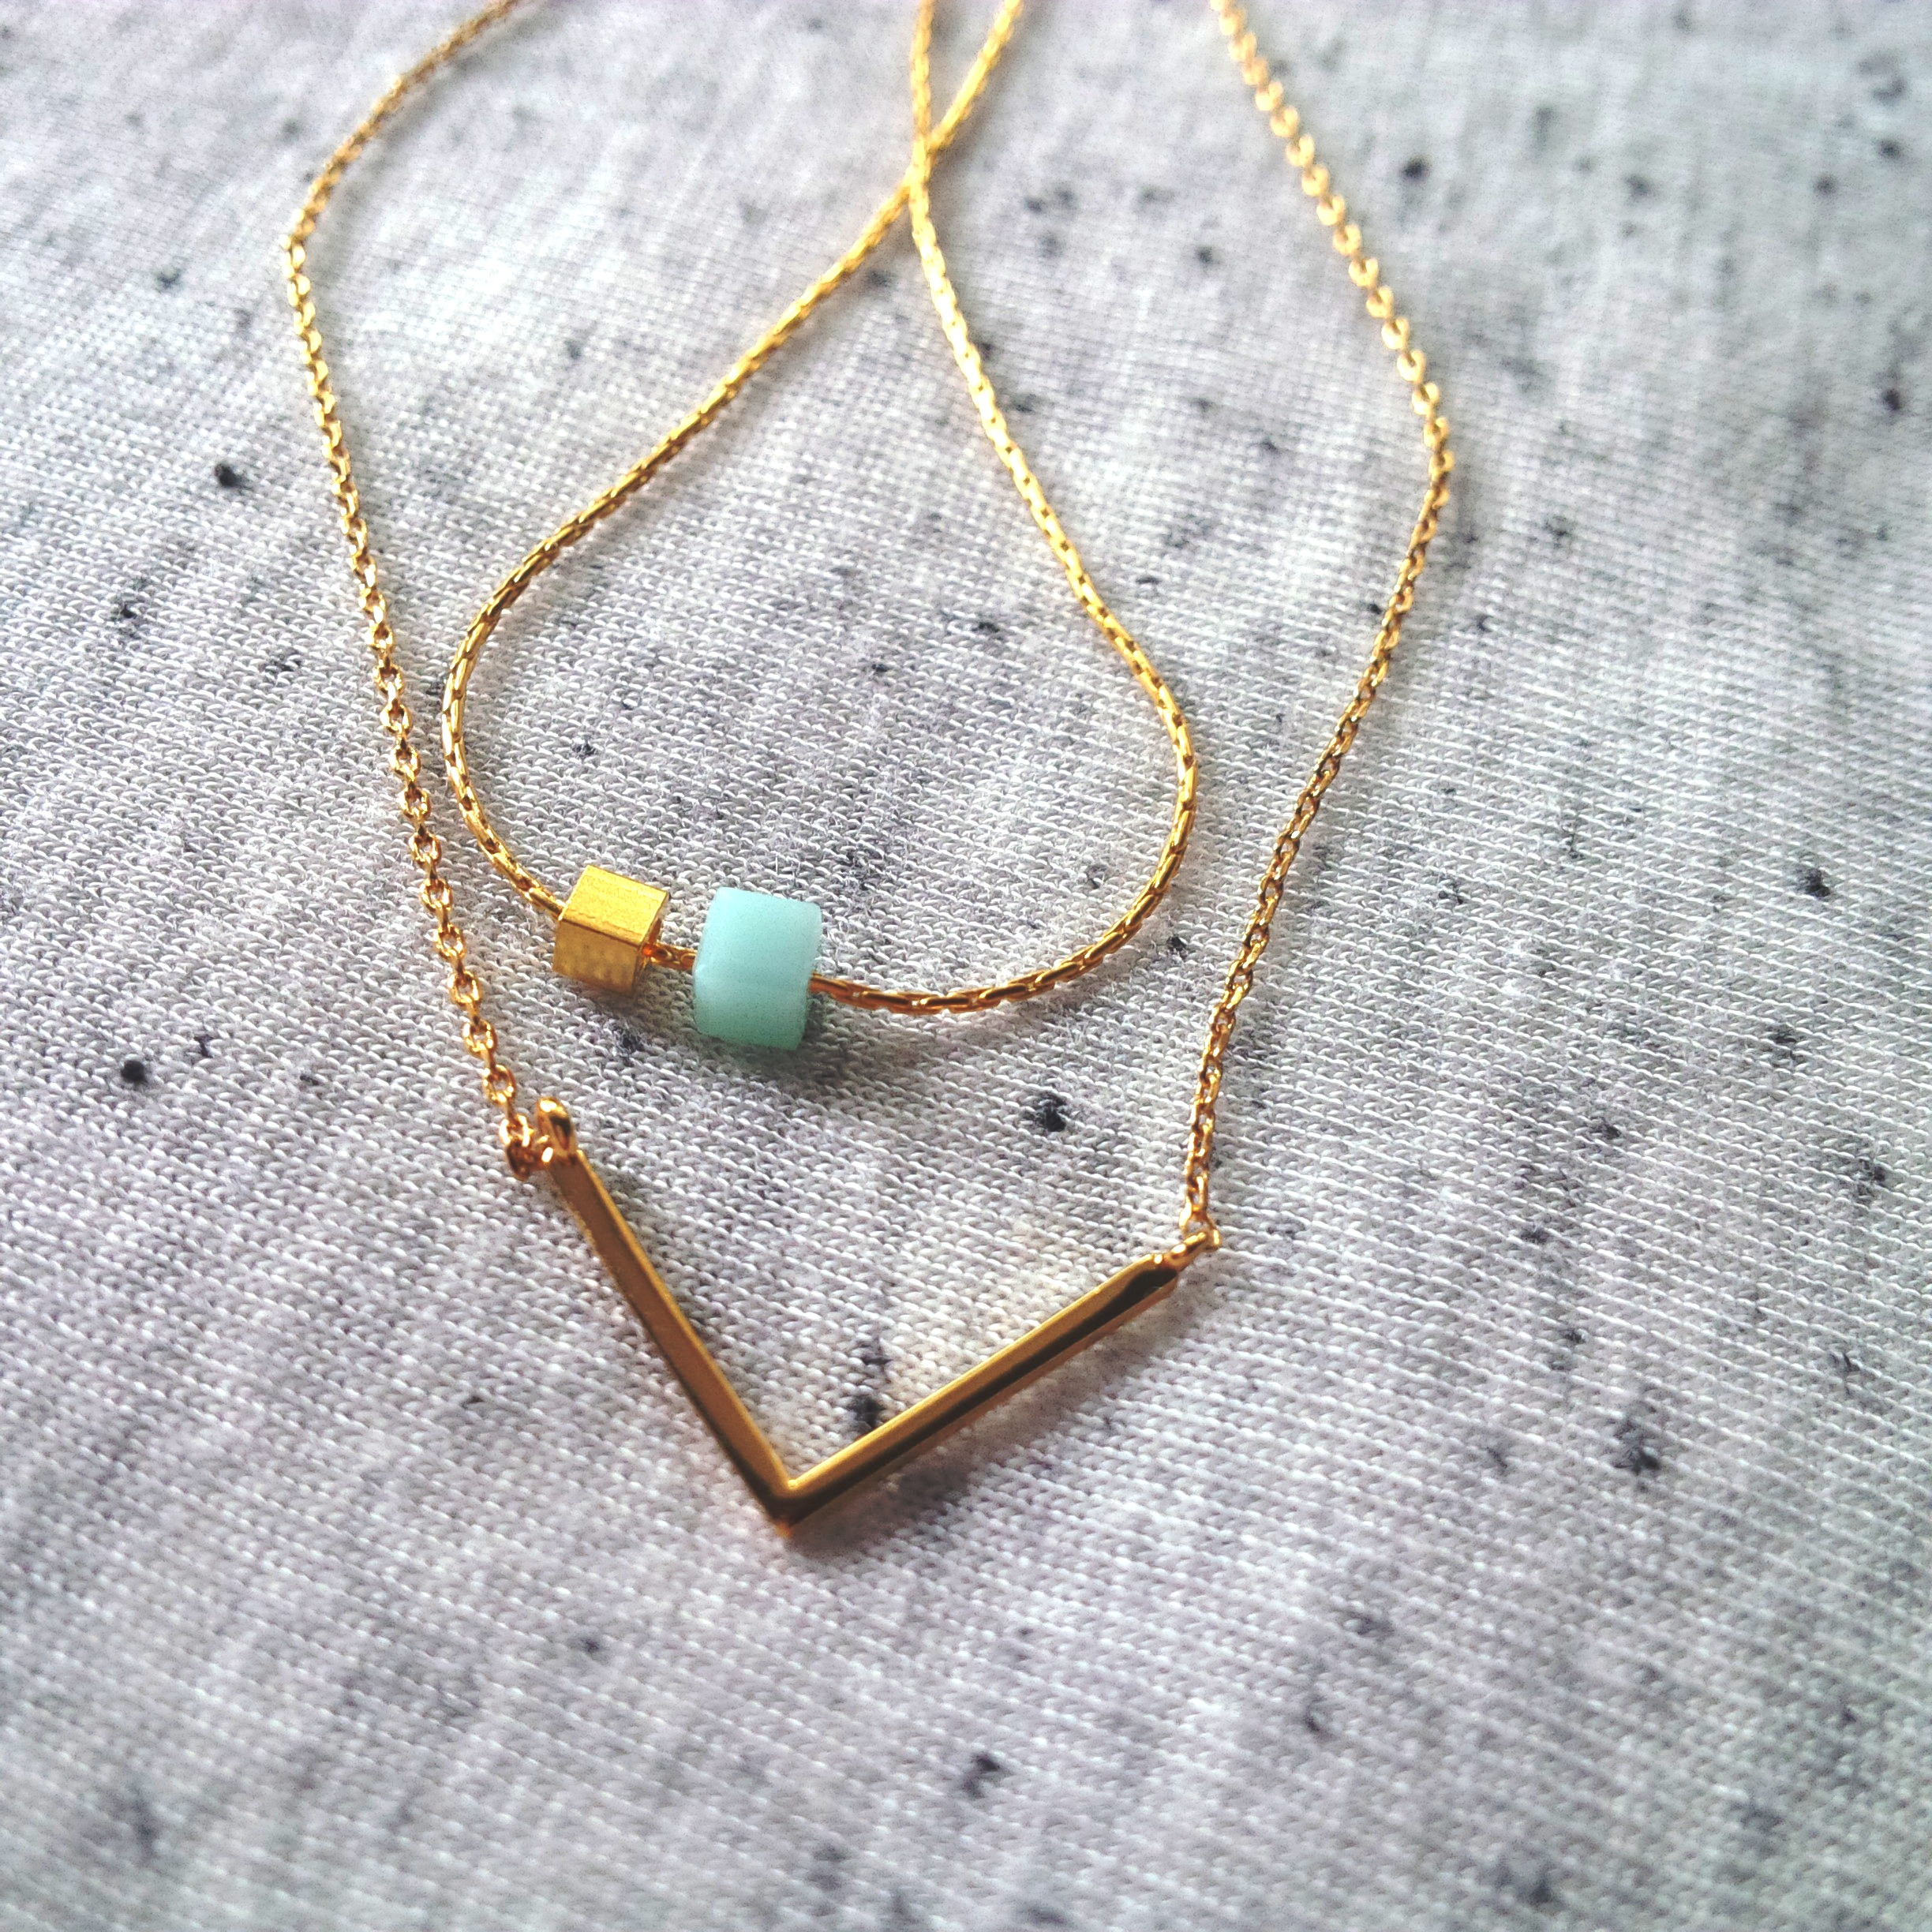 3 Ways to Layer Necklaces to Your Minimalism Look (12)